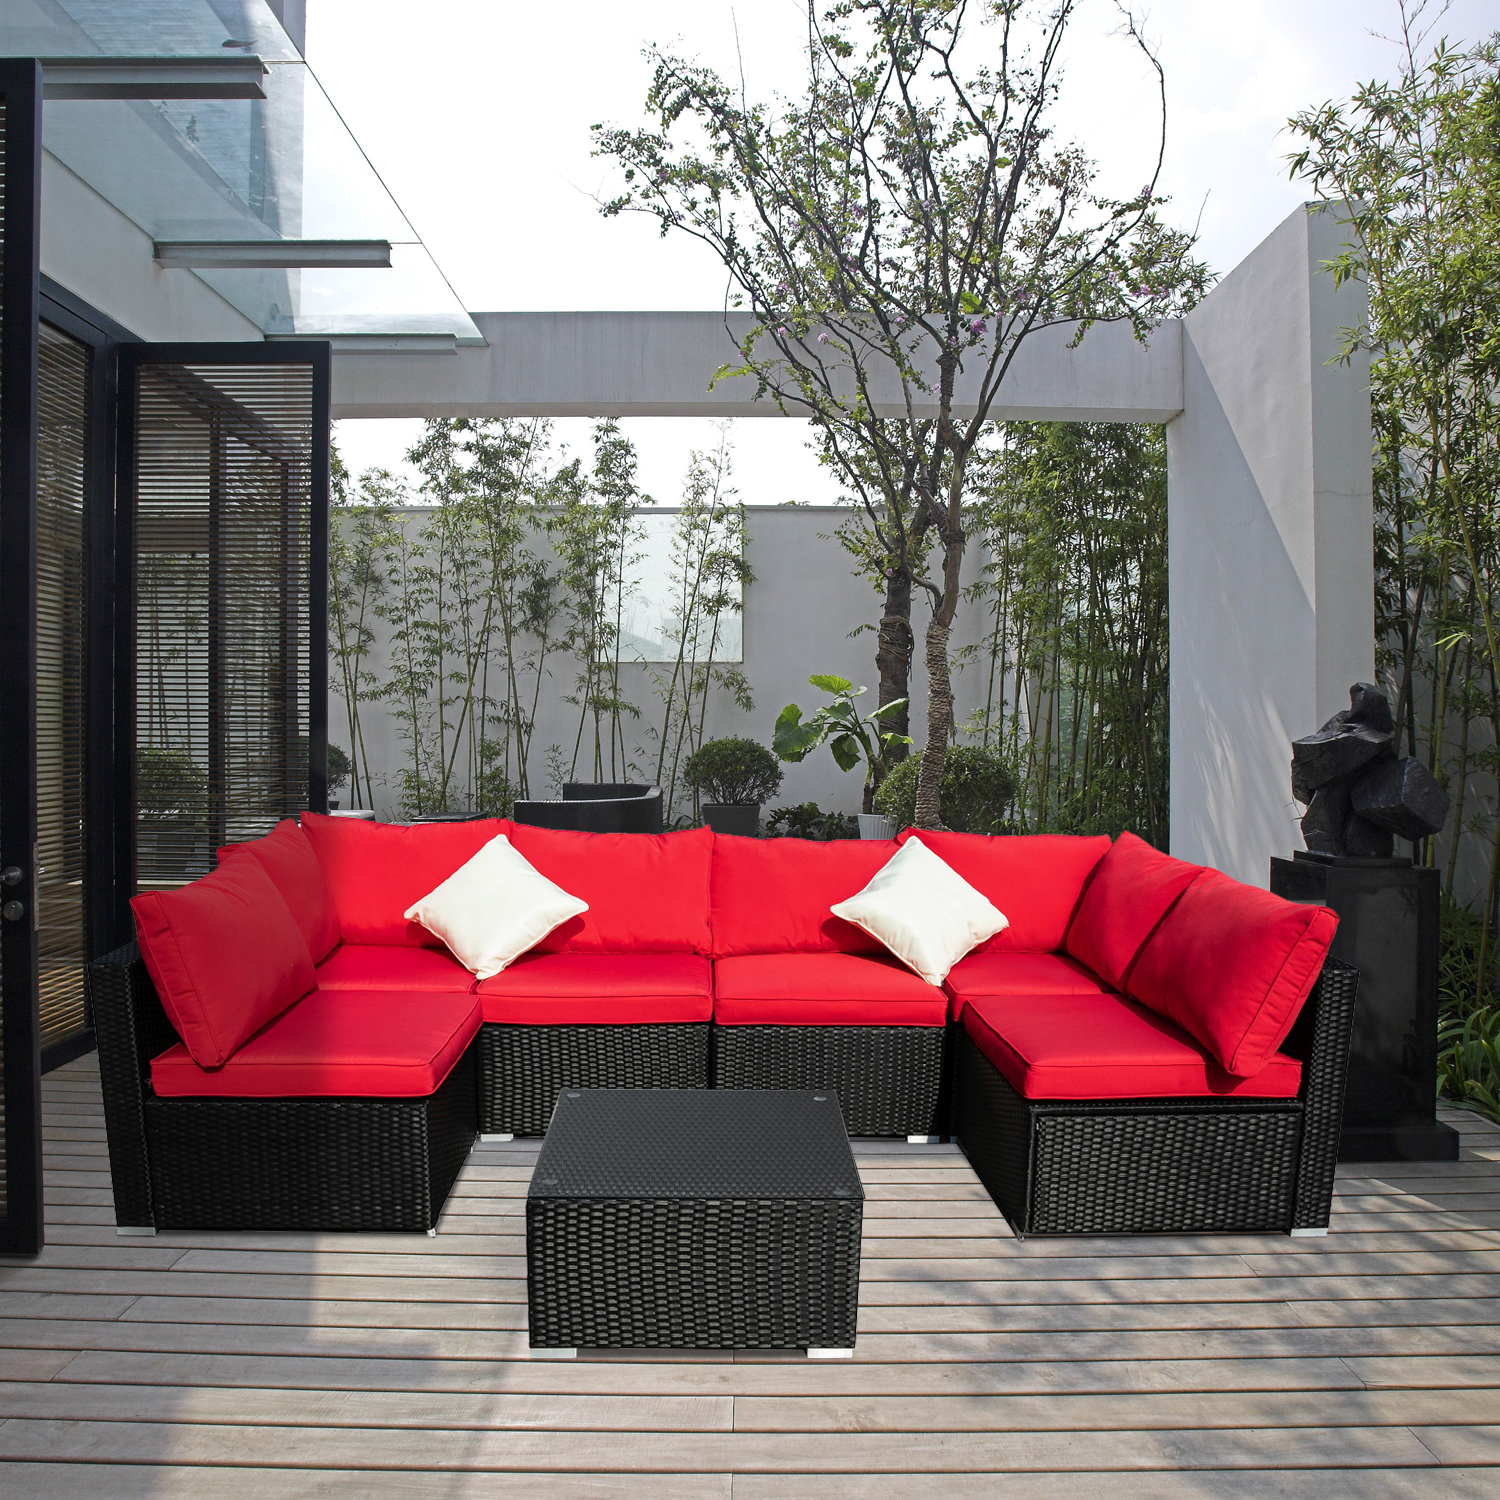 ainfox 7 pieces outdoor patio furniture sets steel frame pe rattan wicker sectional conversation sofa sets red